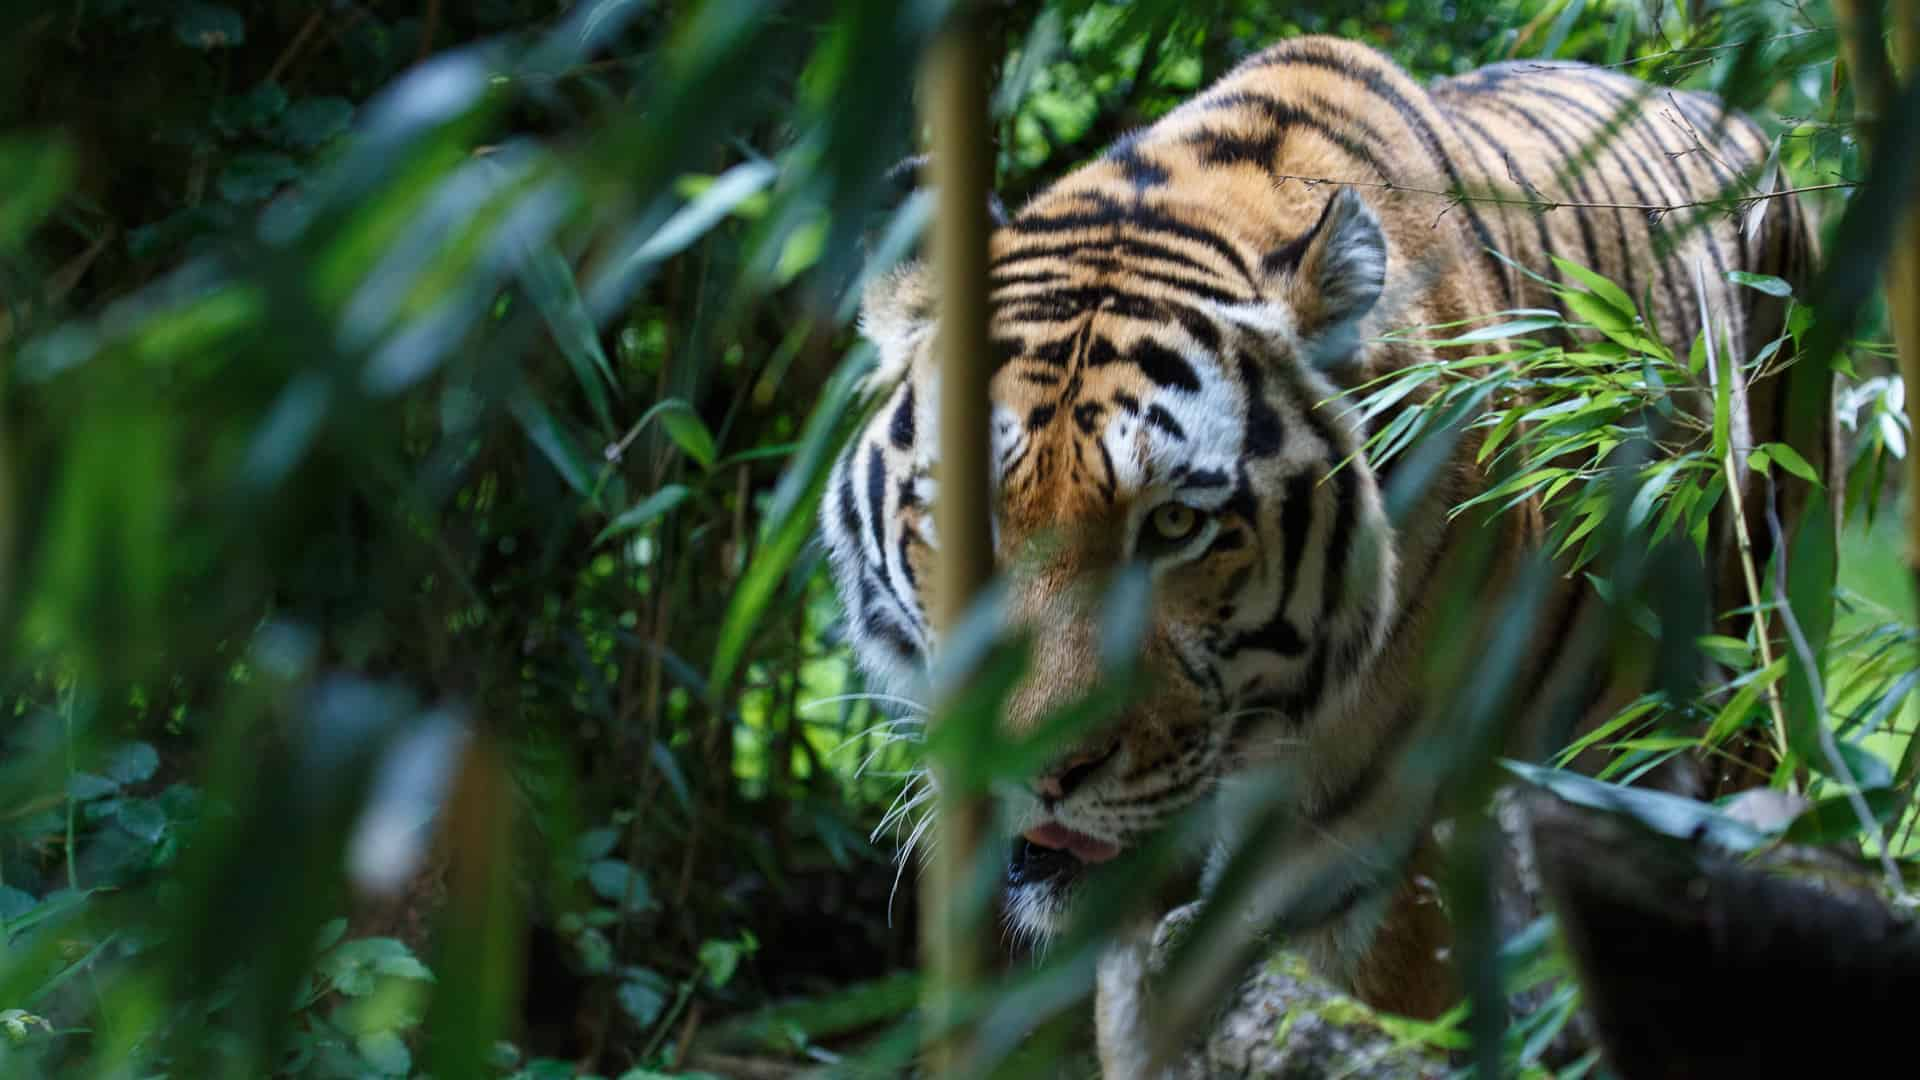 Siberian tiger or Amur tiger, Panthera tigris altaica, walking in the forest and ready for an ambush.